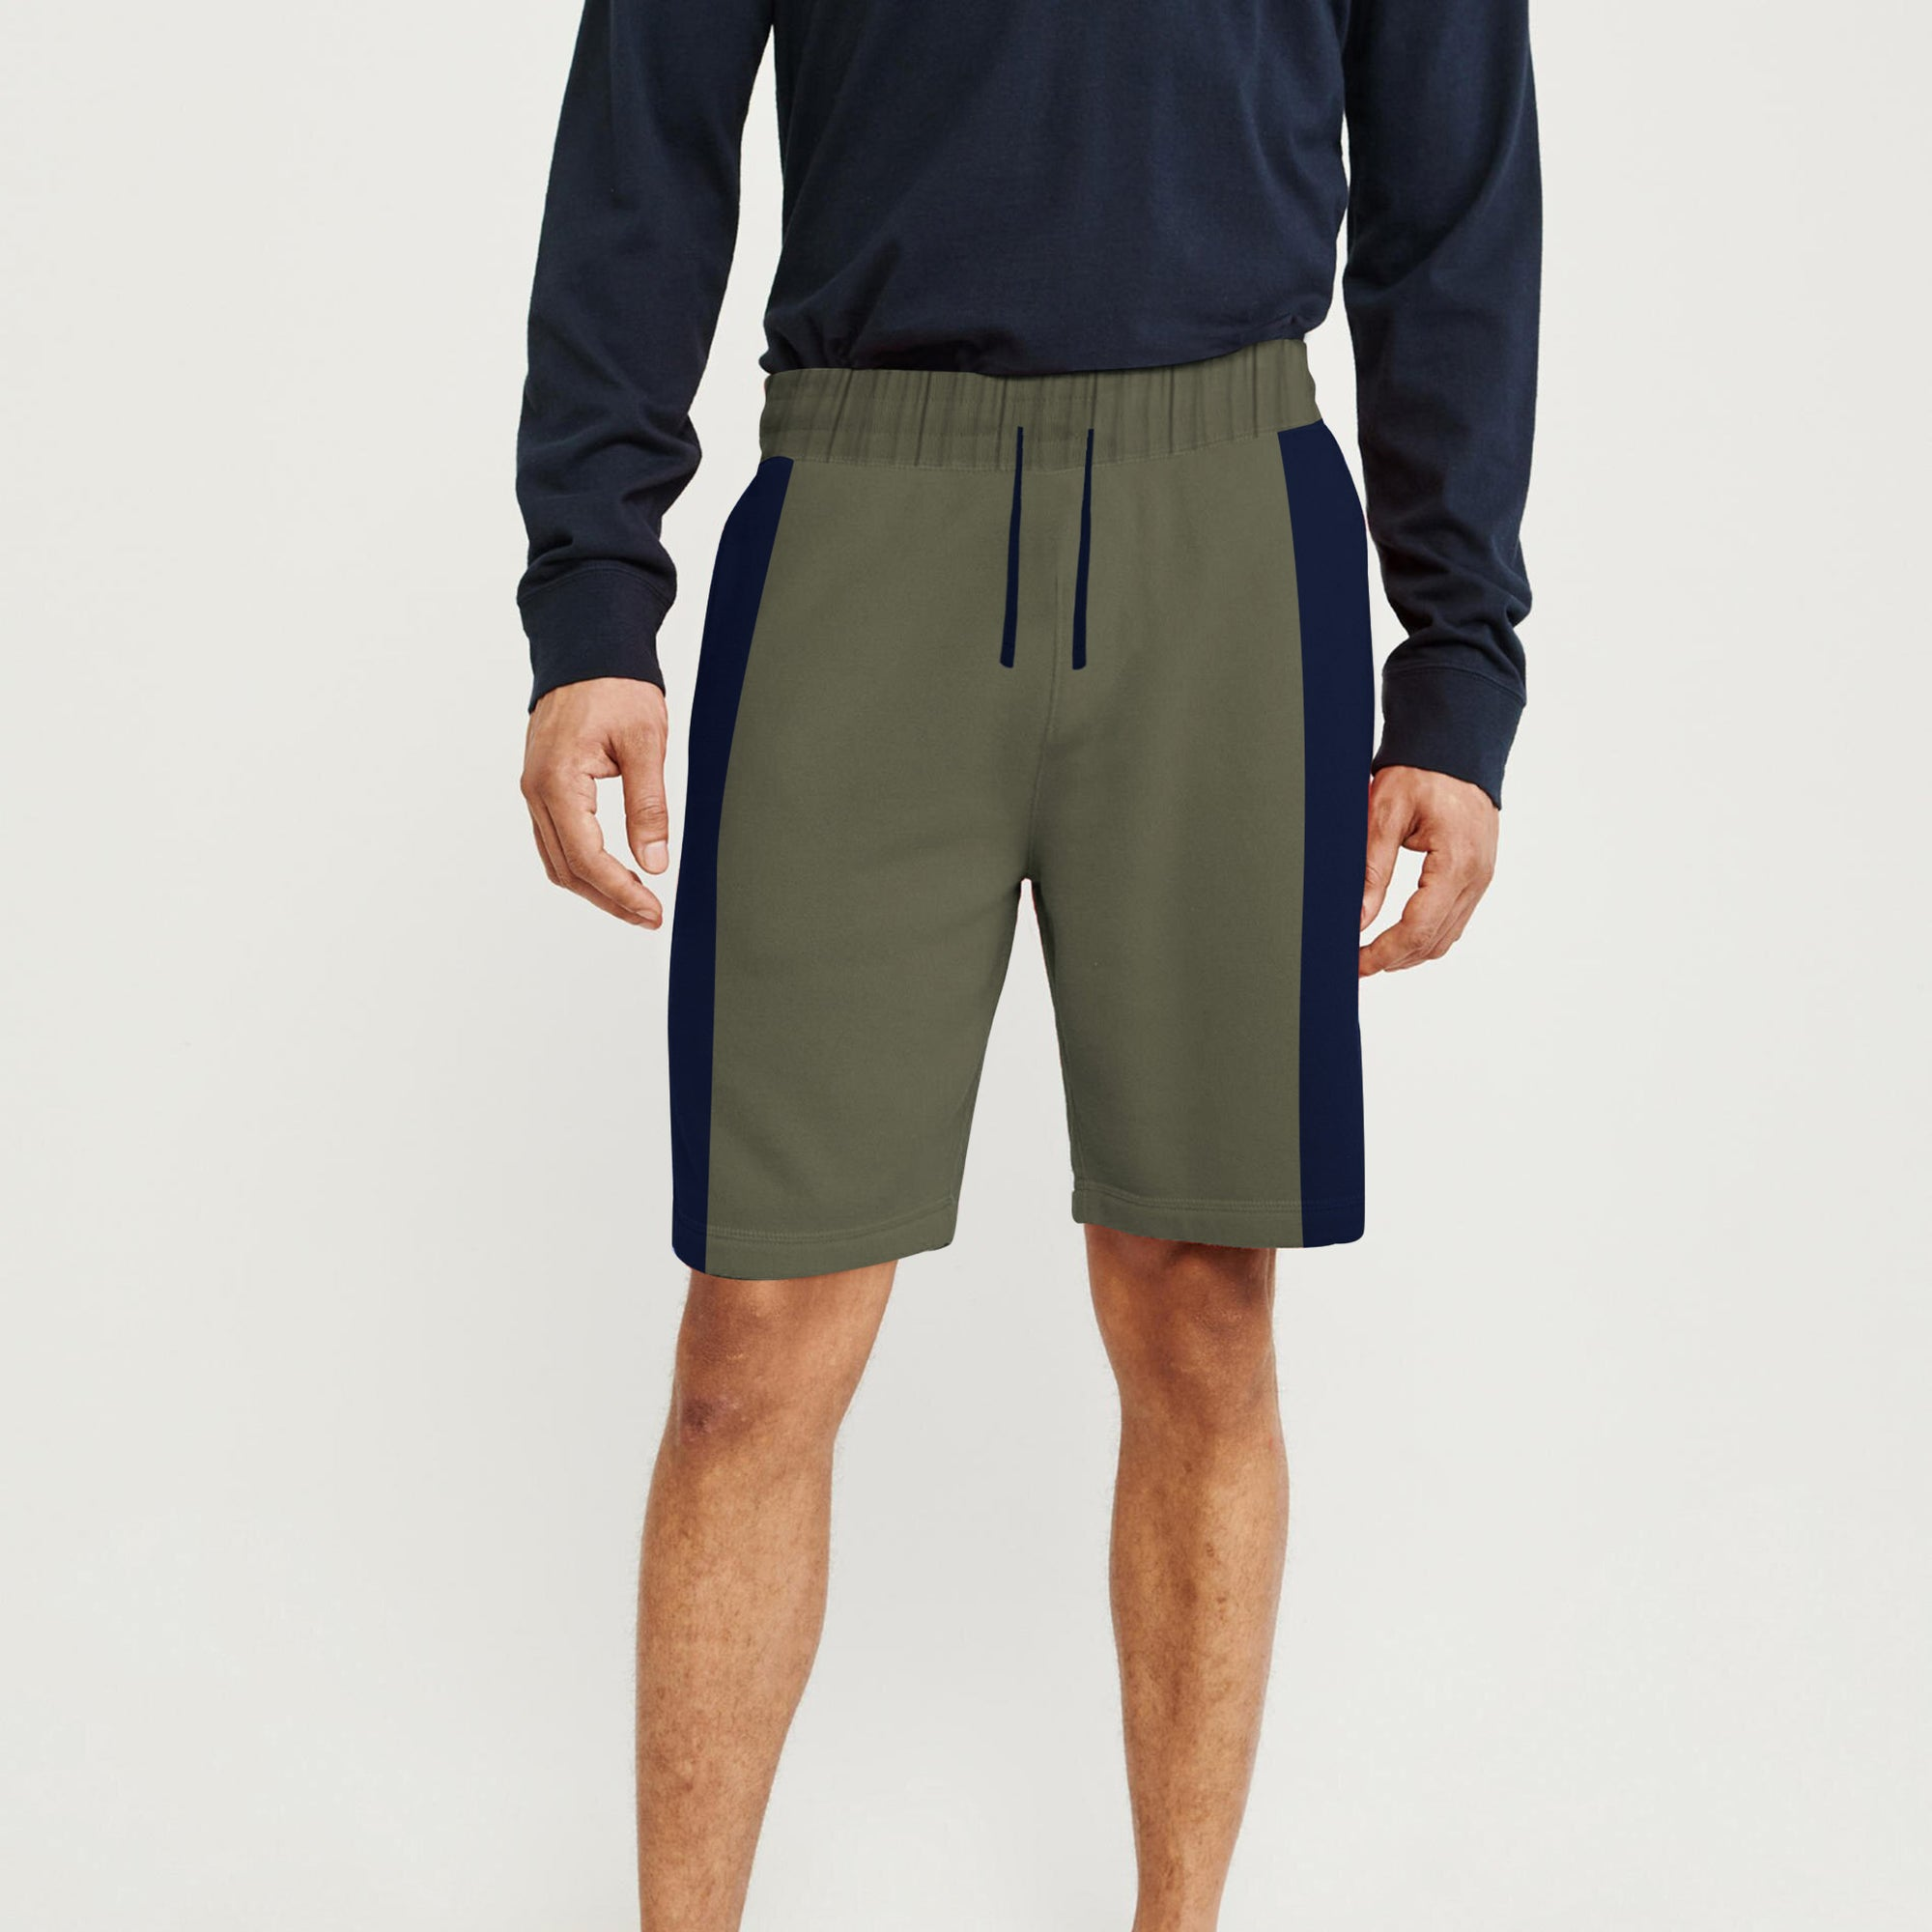 Next Summer Terry Jersey Short For Men-Light Olive & Blue Stripe-BE8823